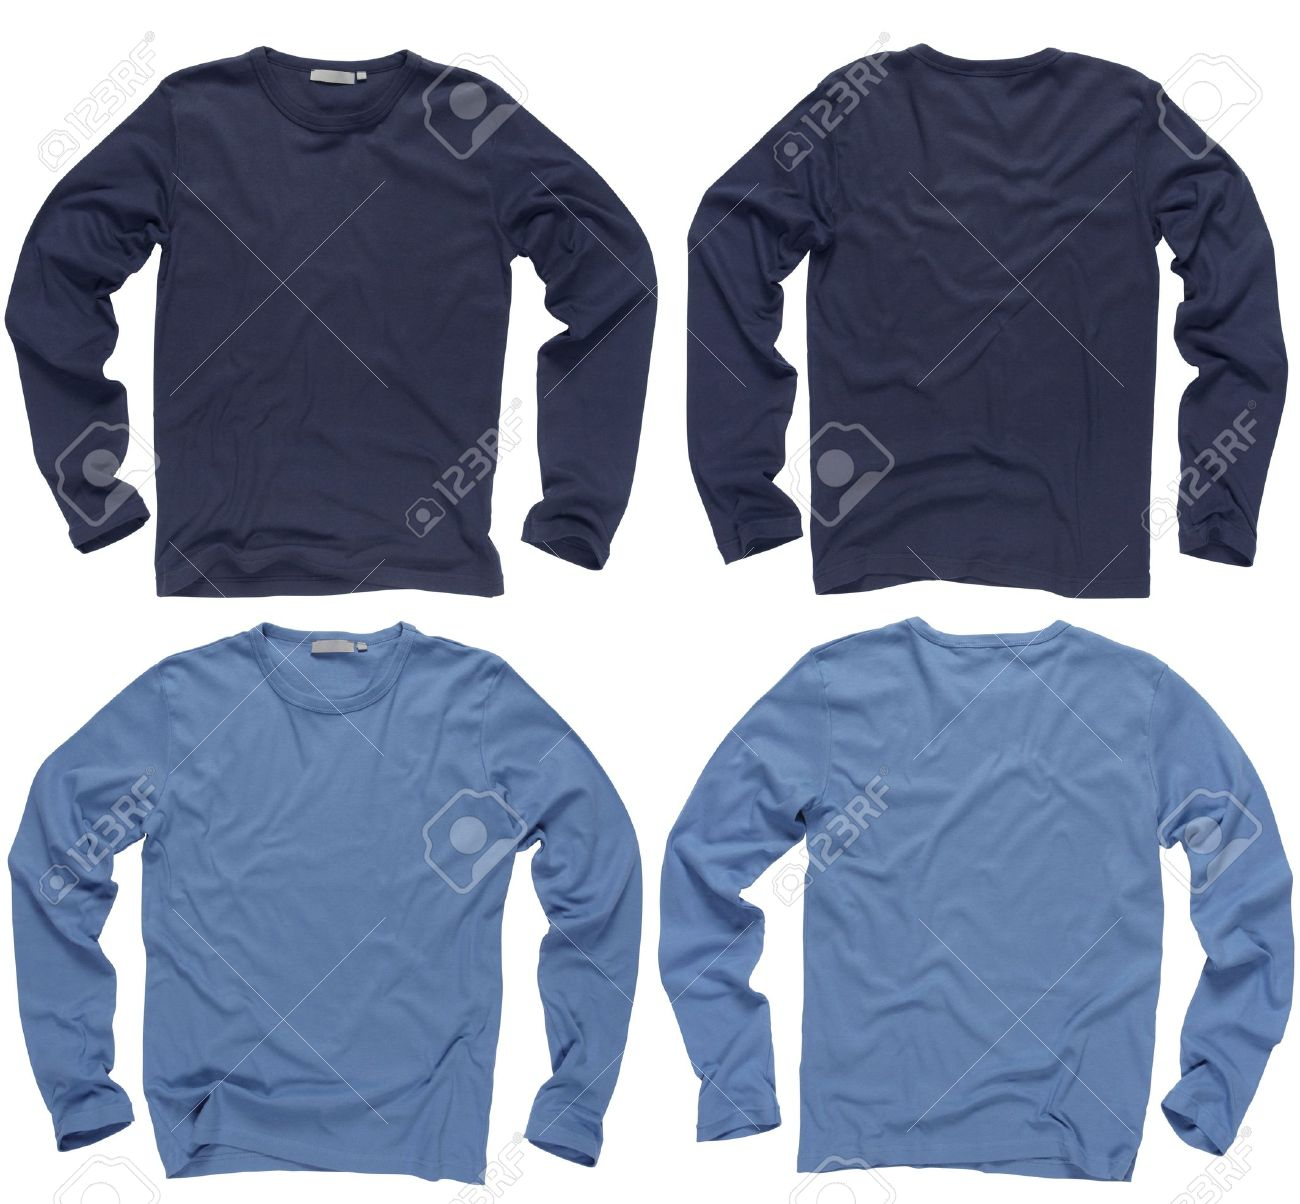 Photograph Of Two Wrinkled Blank Navy And Light Blue Long Sleeve ...